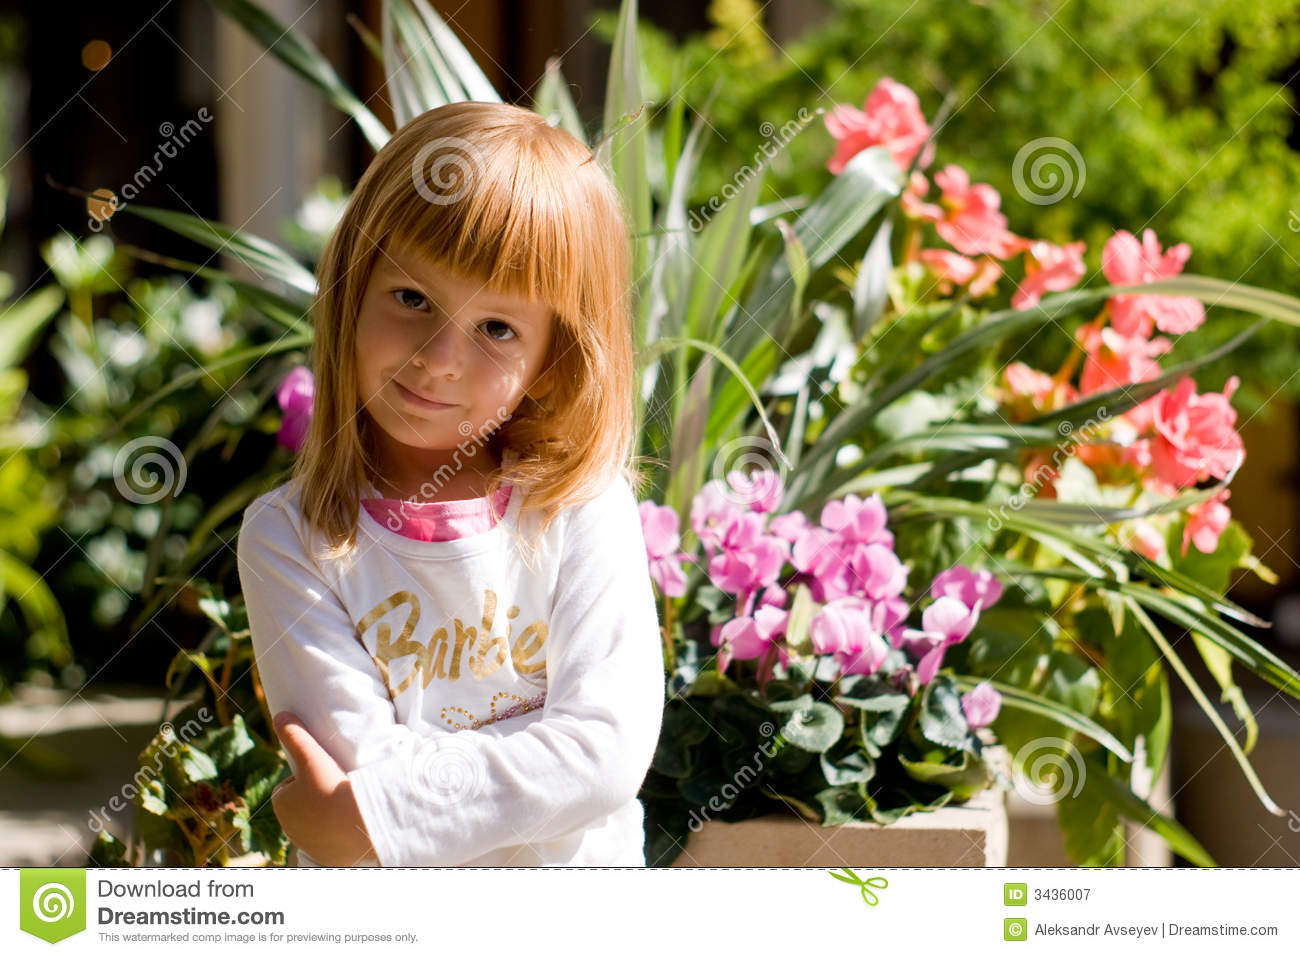 Cute Kid Wallpapers Free Download Barbie Girl Stock Image Image Of Smile Smiling Eyes